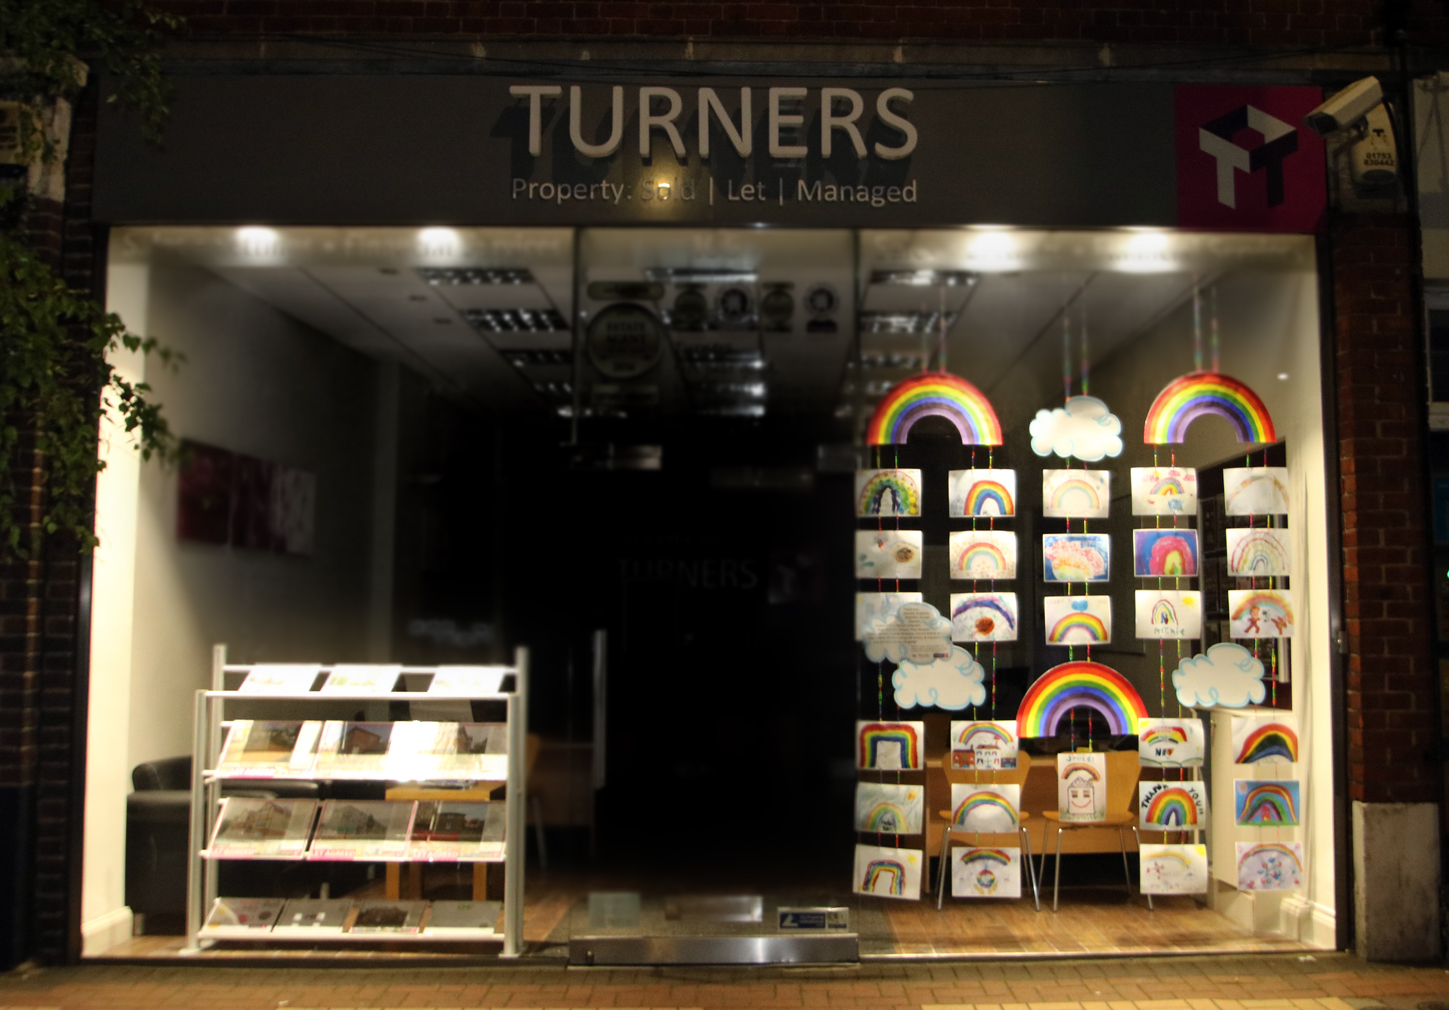 Turners-Property-Clap-For-Carers-Window Display